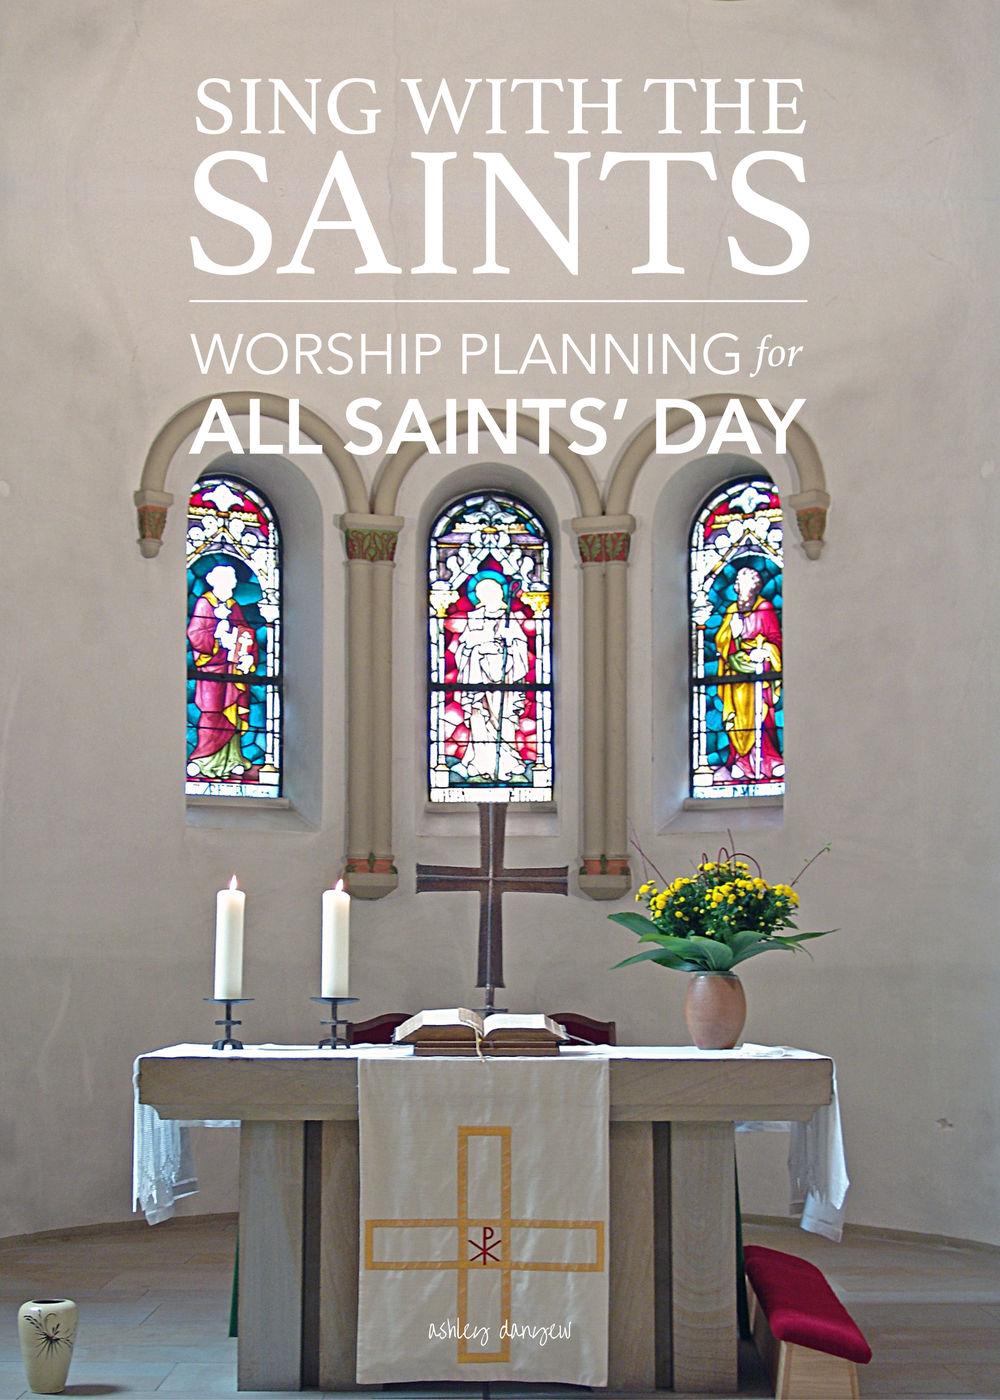 Sing with the Saints - Worship Planning for All Saints' Day-01.png